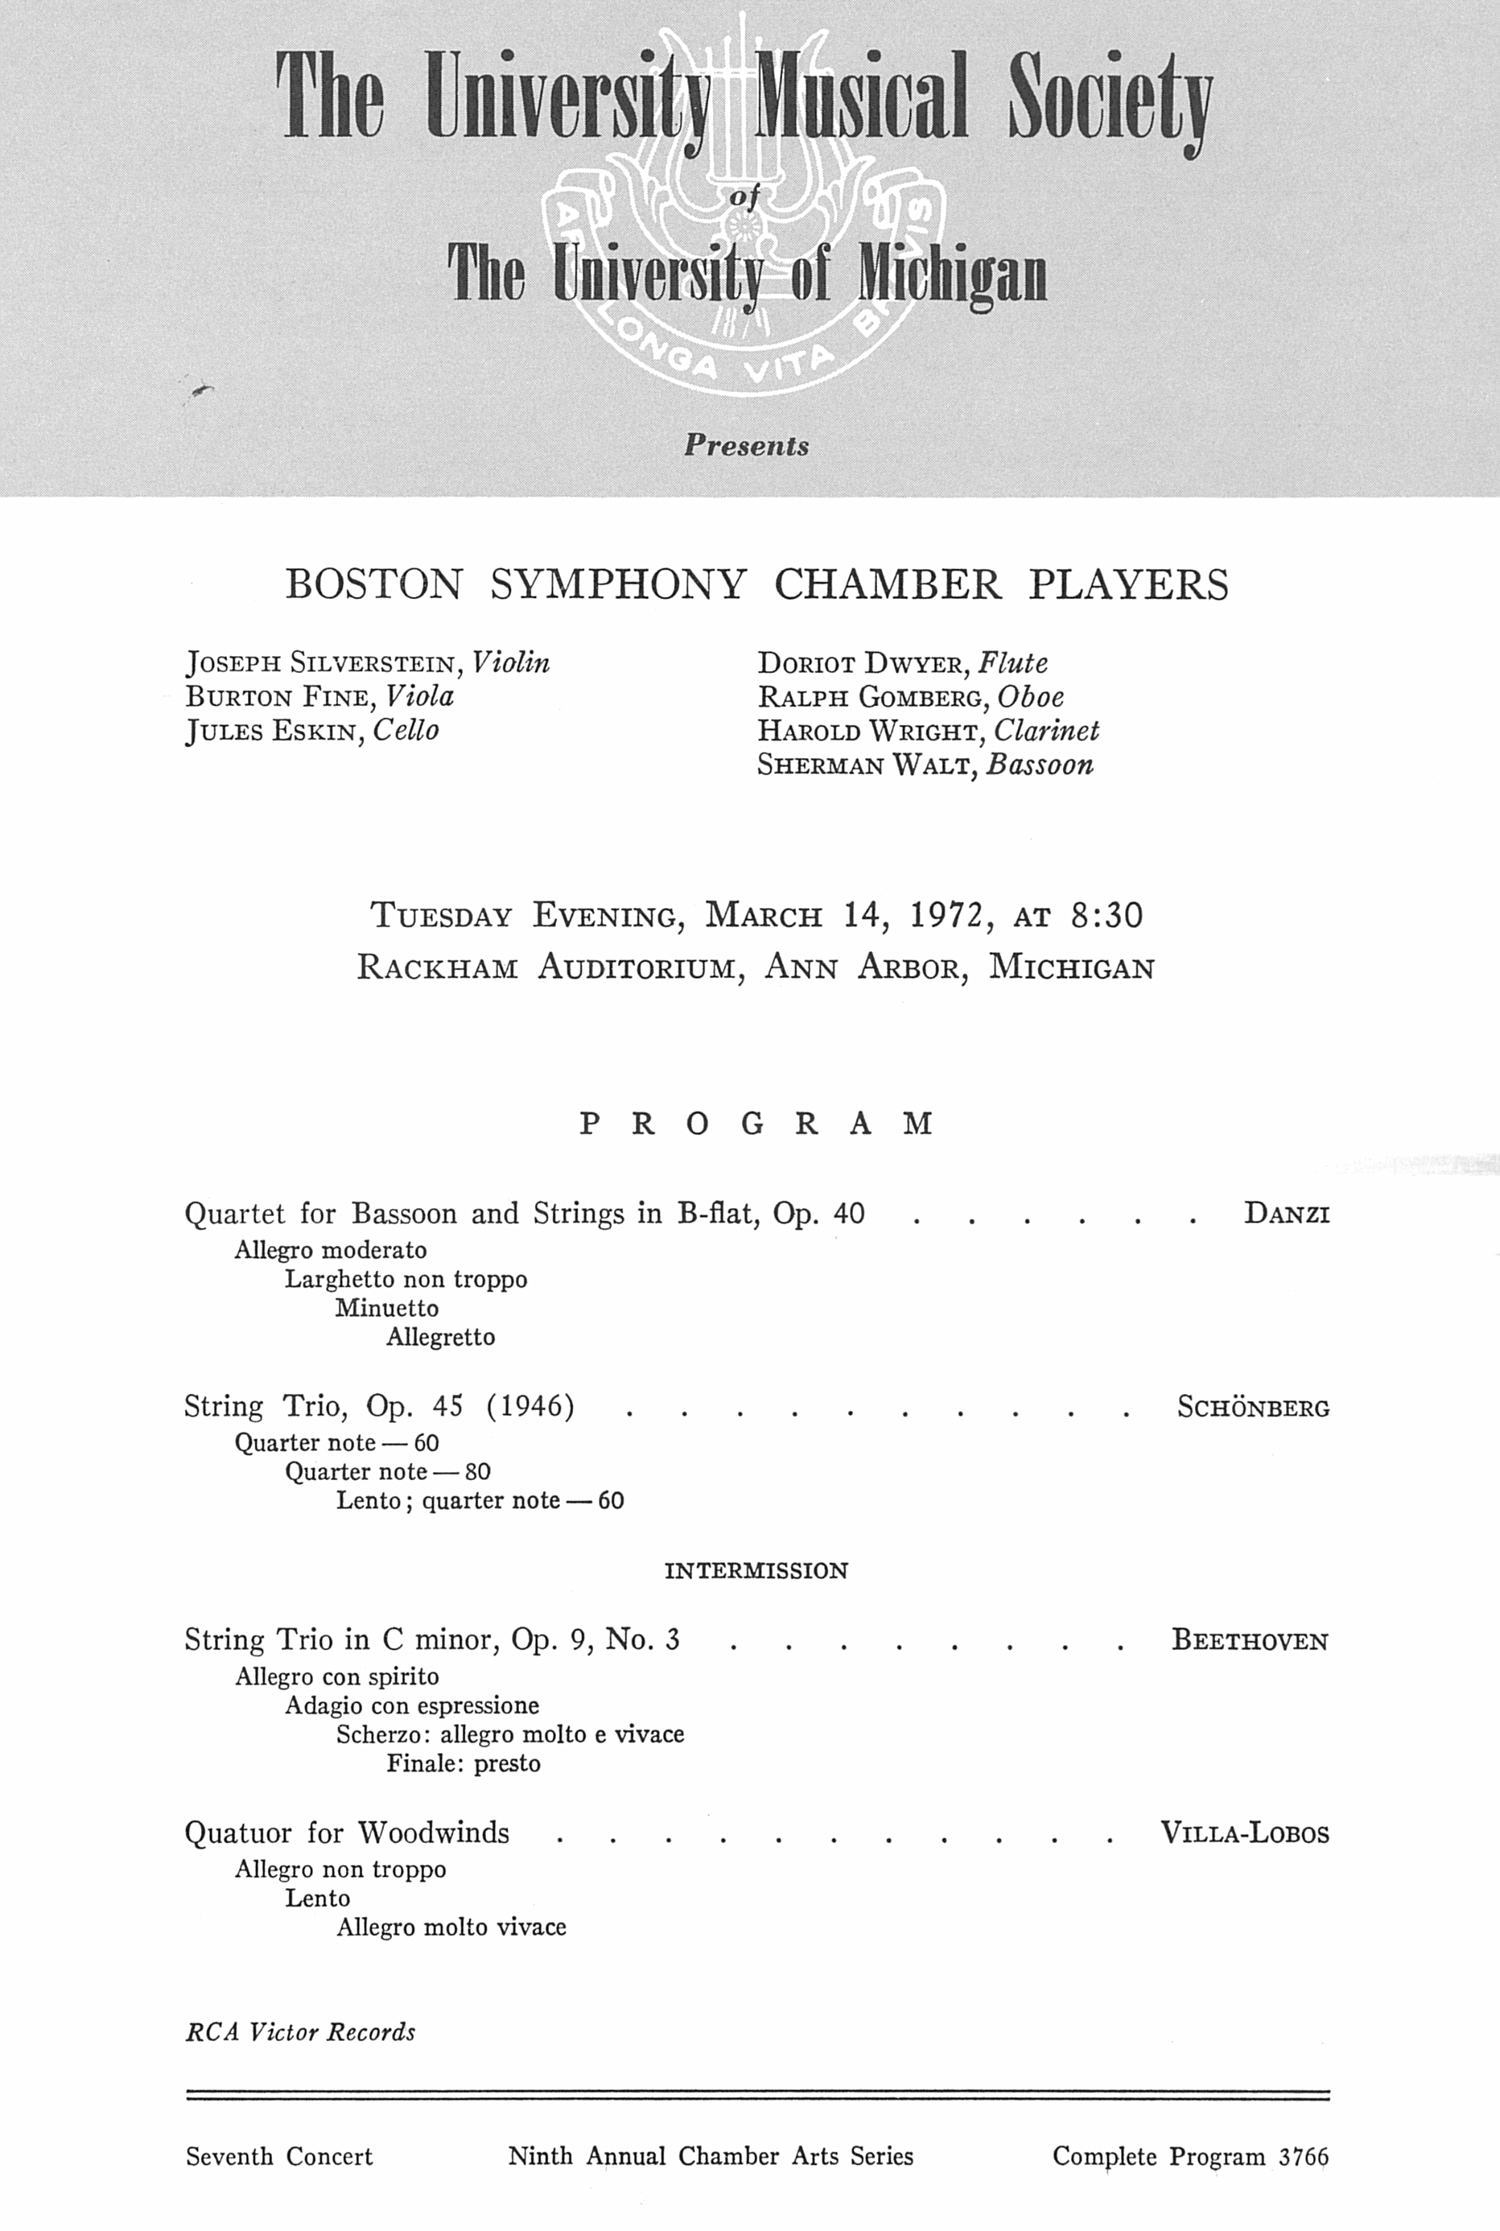 UMS Concert Program, March 14, 1972: Boston Symphony Chamber Players --  image